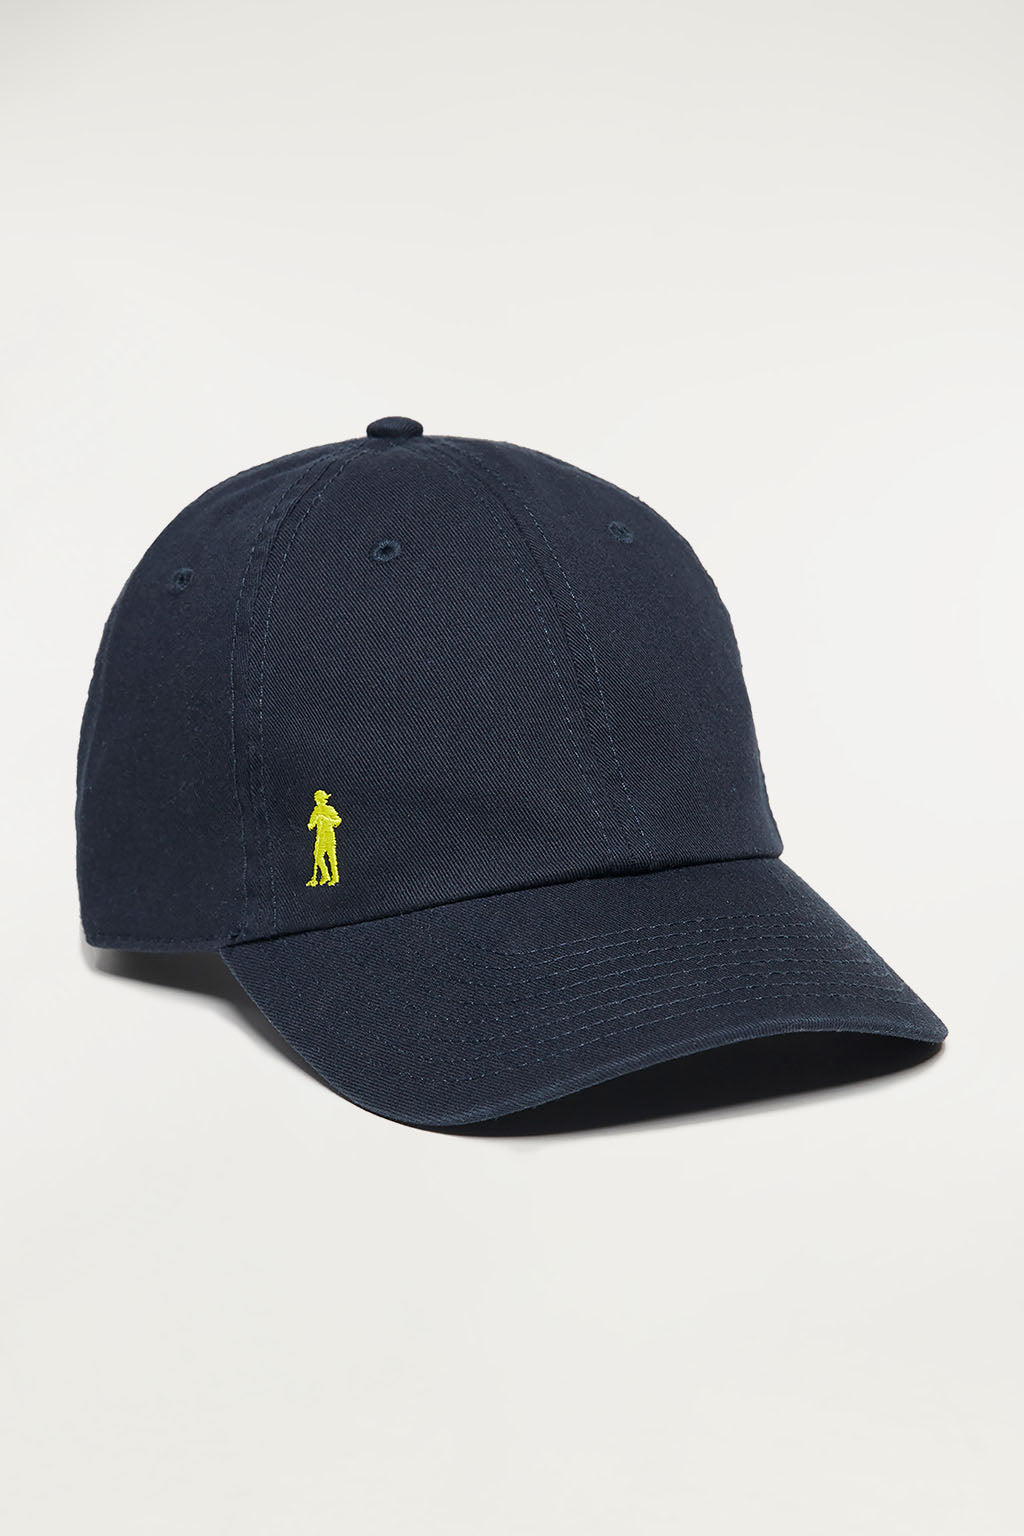 Navy blue twill cap with embroidered logo